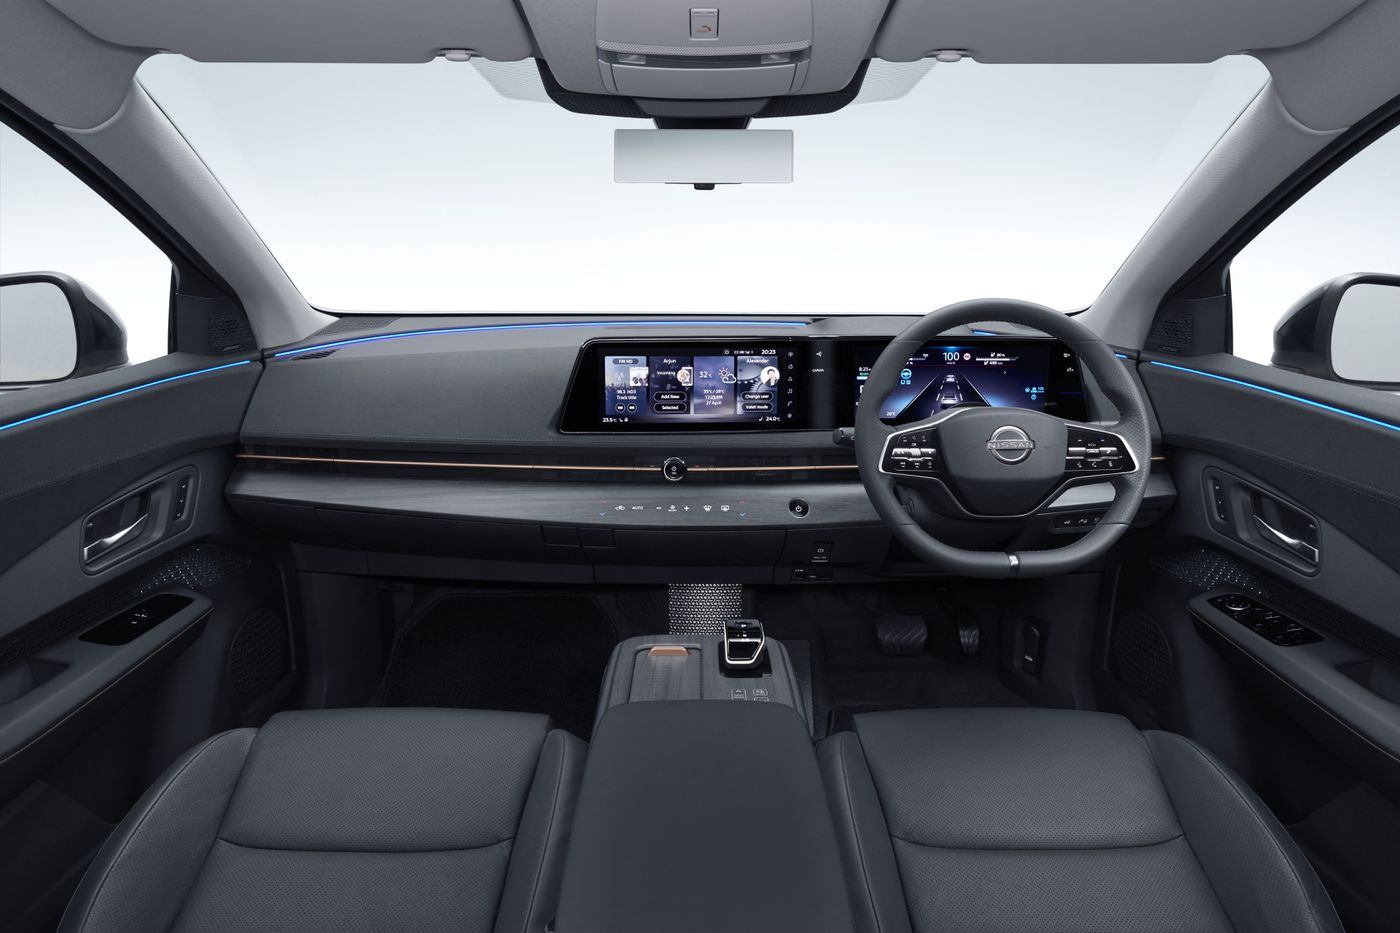 Nissan Ariya Electric Crossover Suv Unveiled With Up To 300 Miles Of Range The Verge